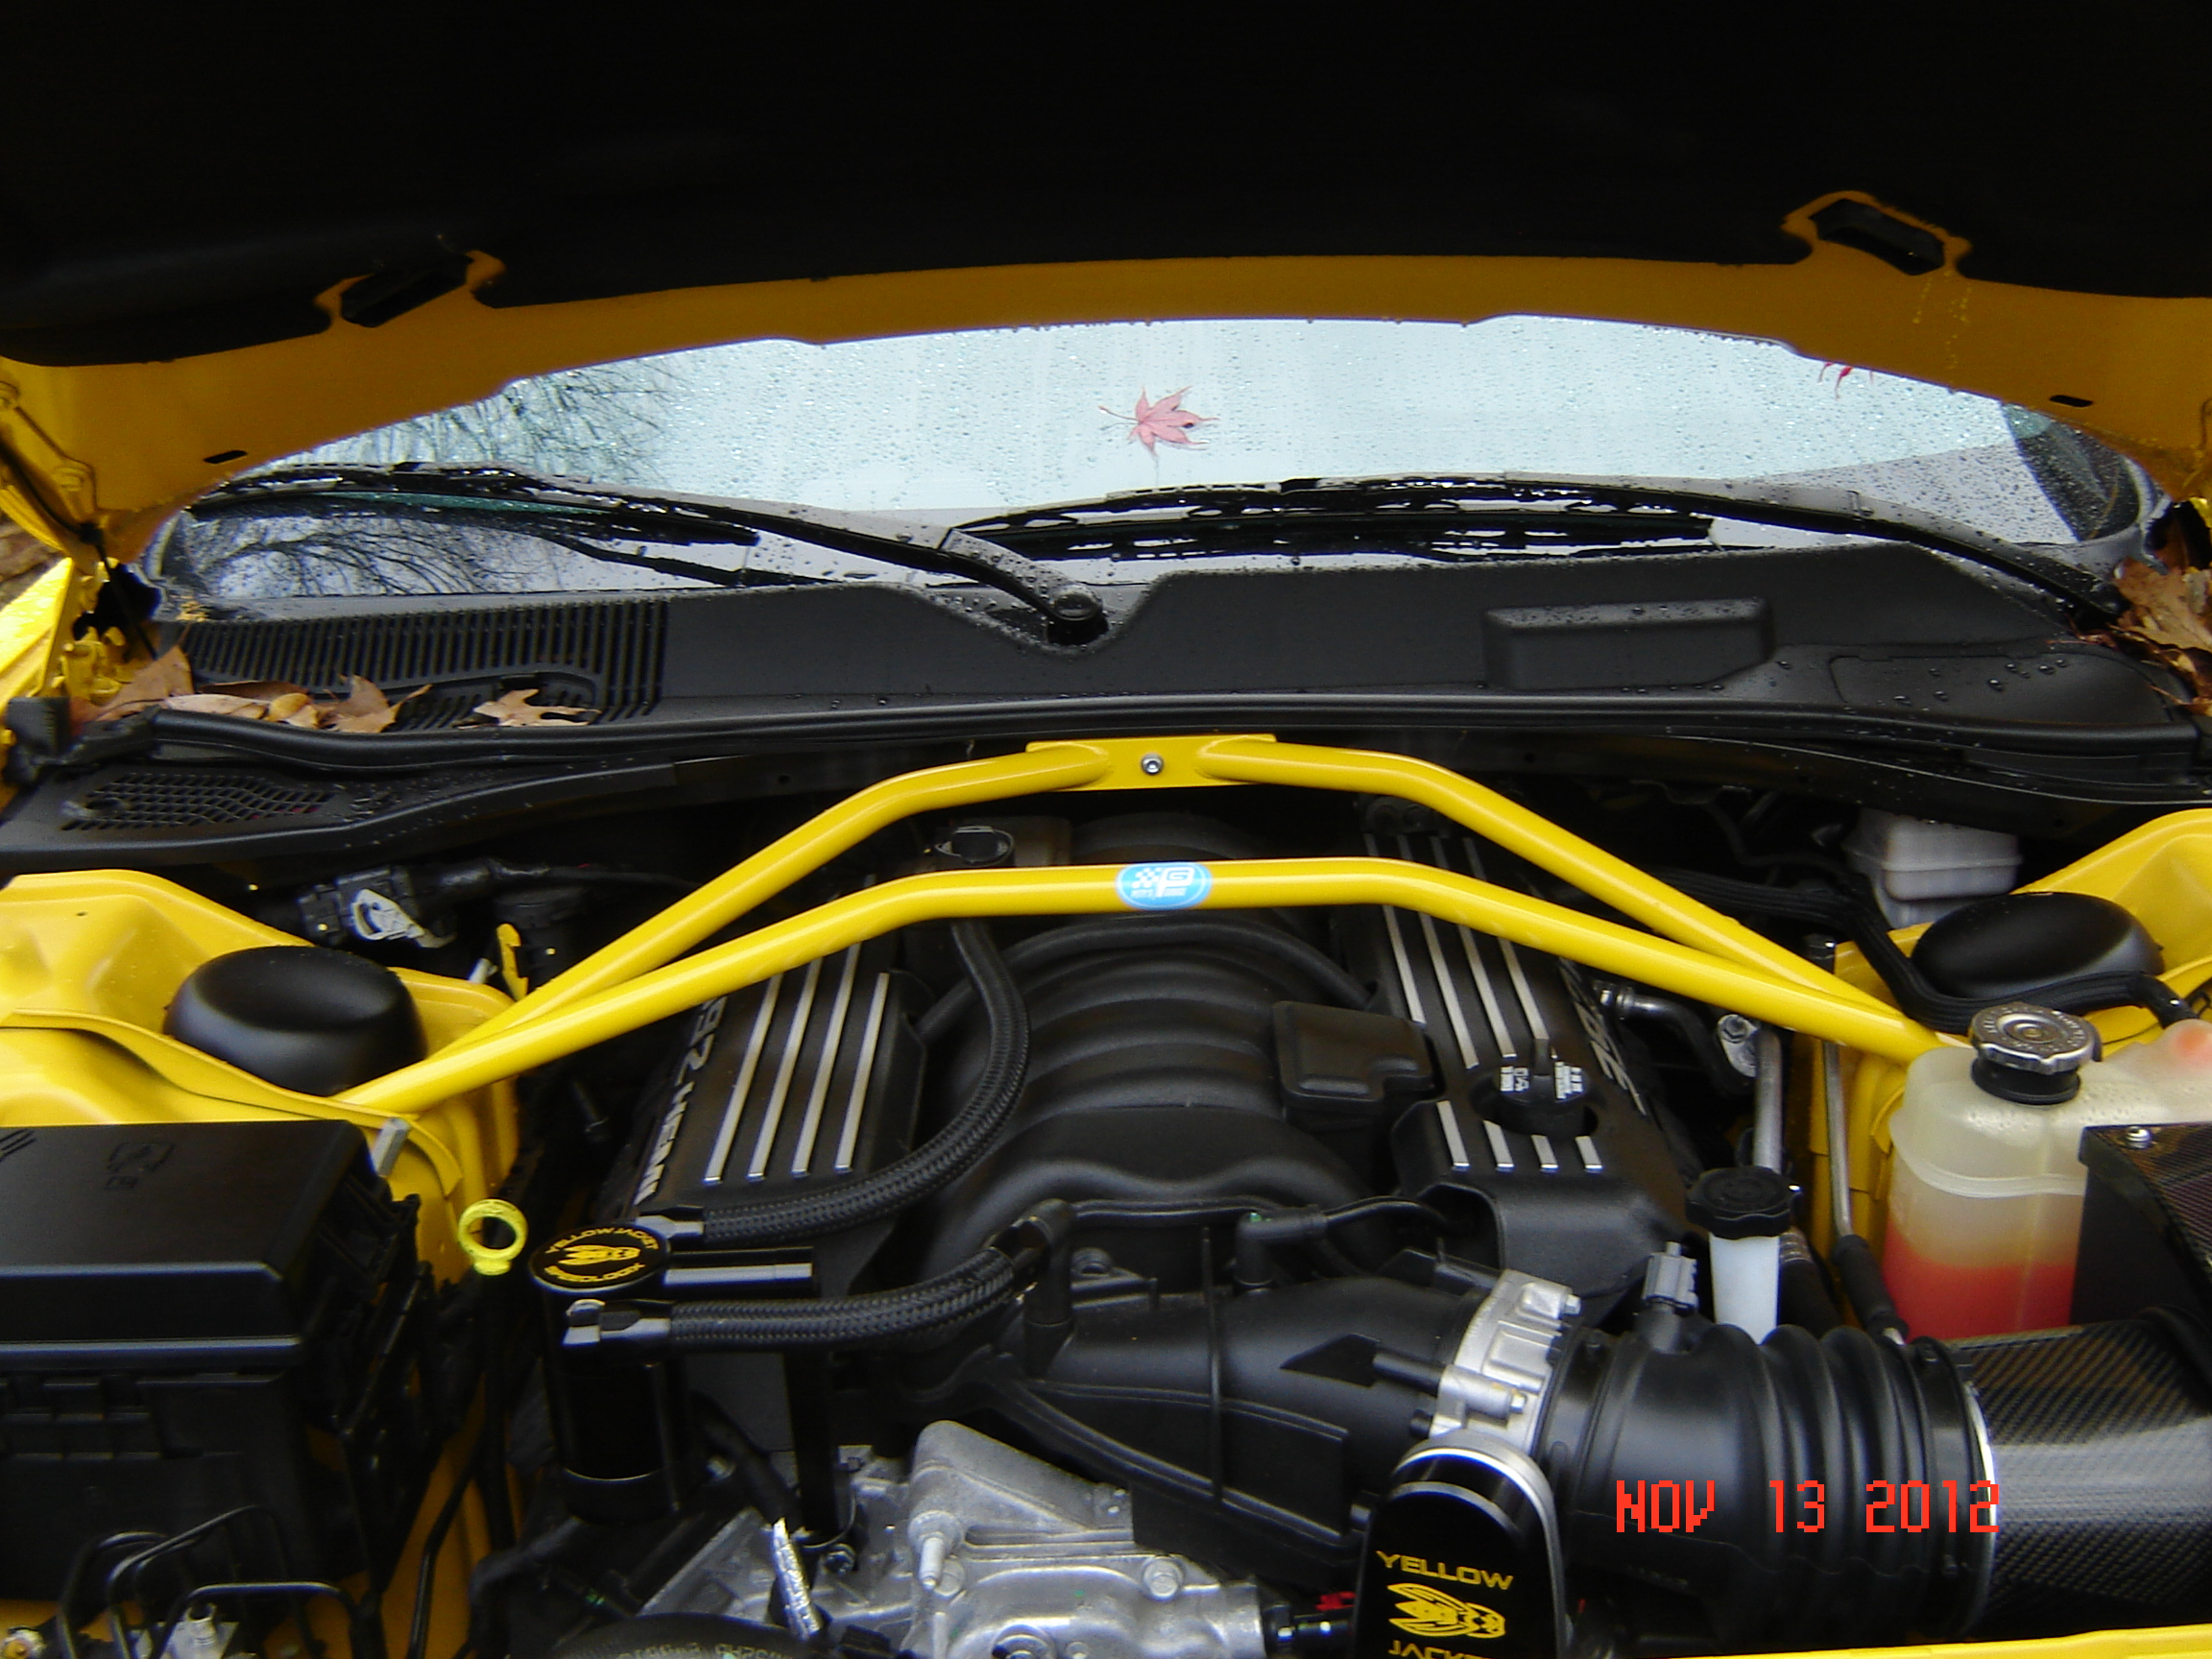 Under hood pictures please post!-imported-photos-00093.jpg